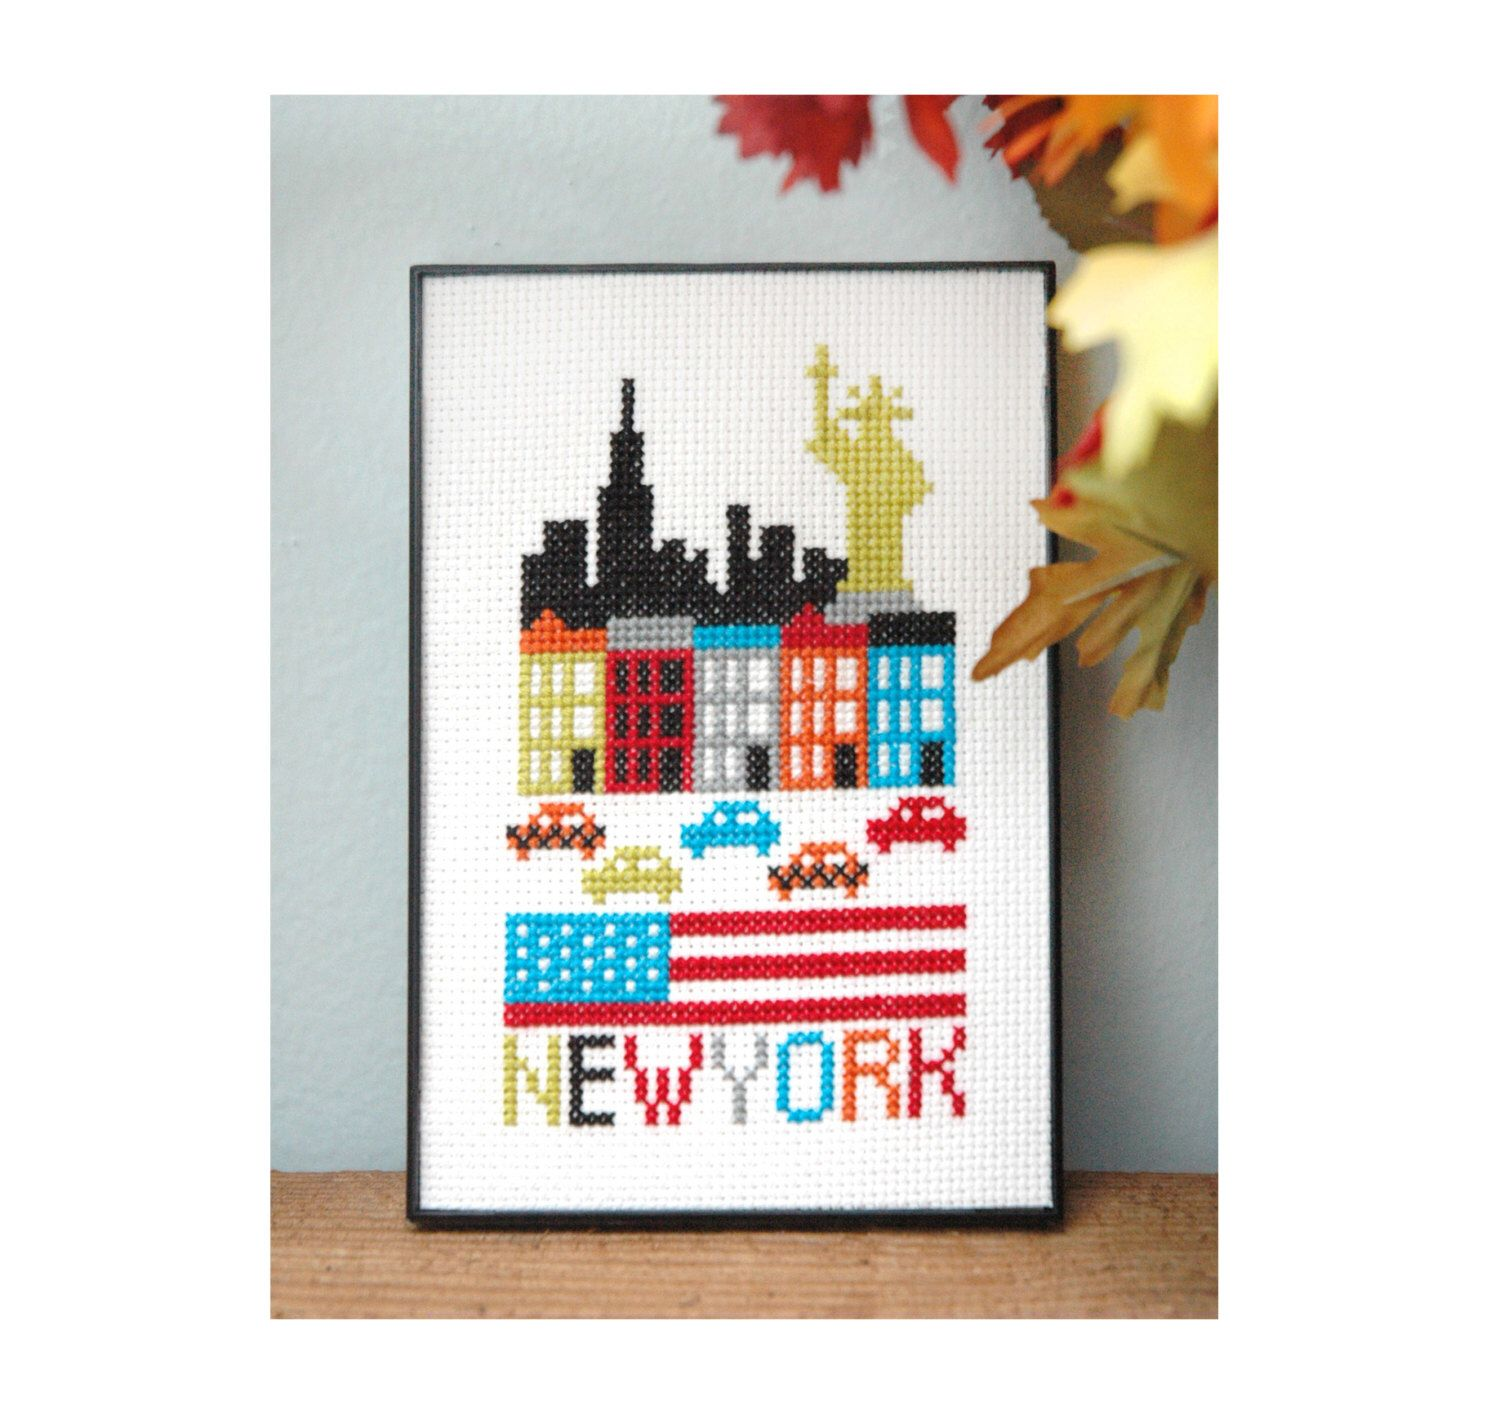 New York Cross Stitch Pattern Instant Download by tinymodernist on Etsy https://www.etsy.com/listing/156540615/new-york-cross-stitch-pattern-instant